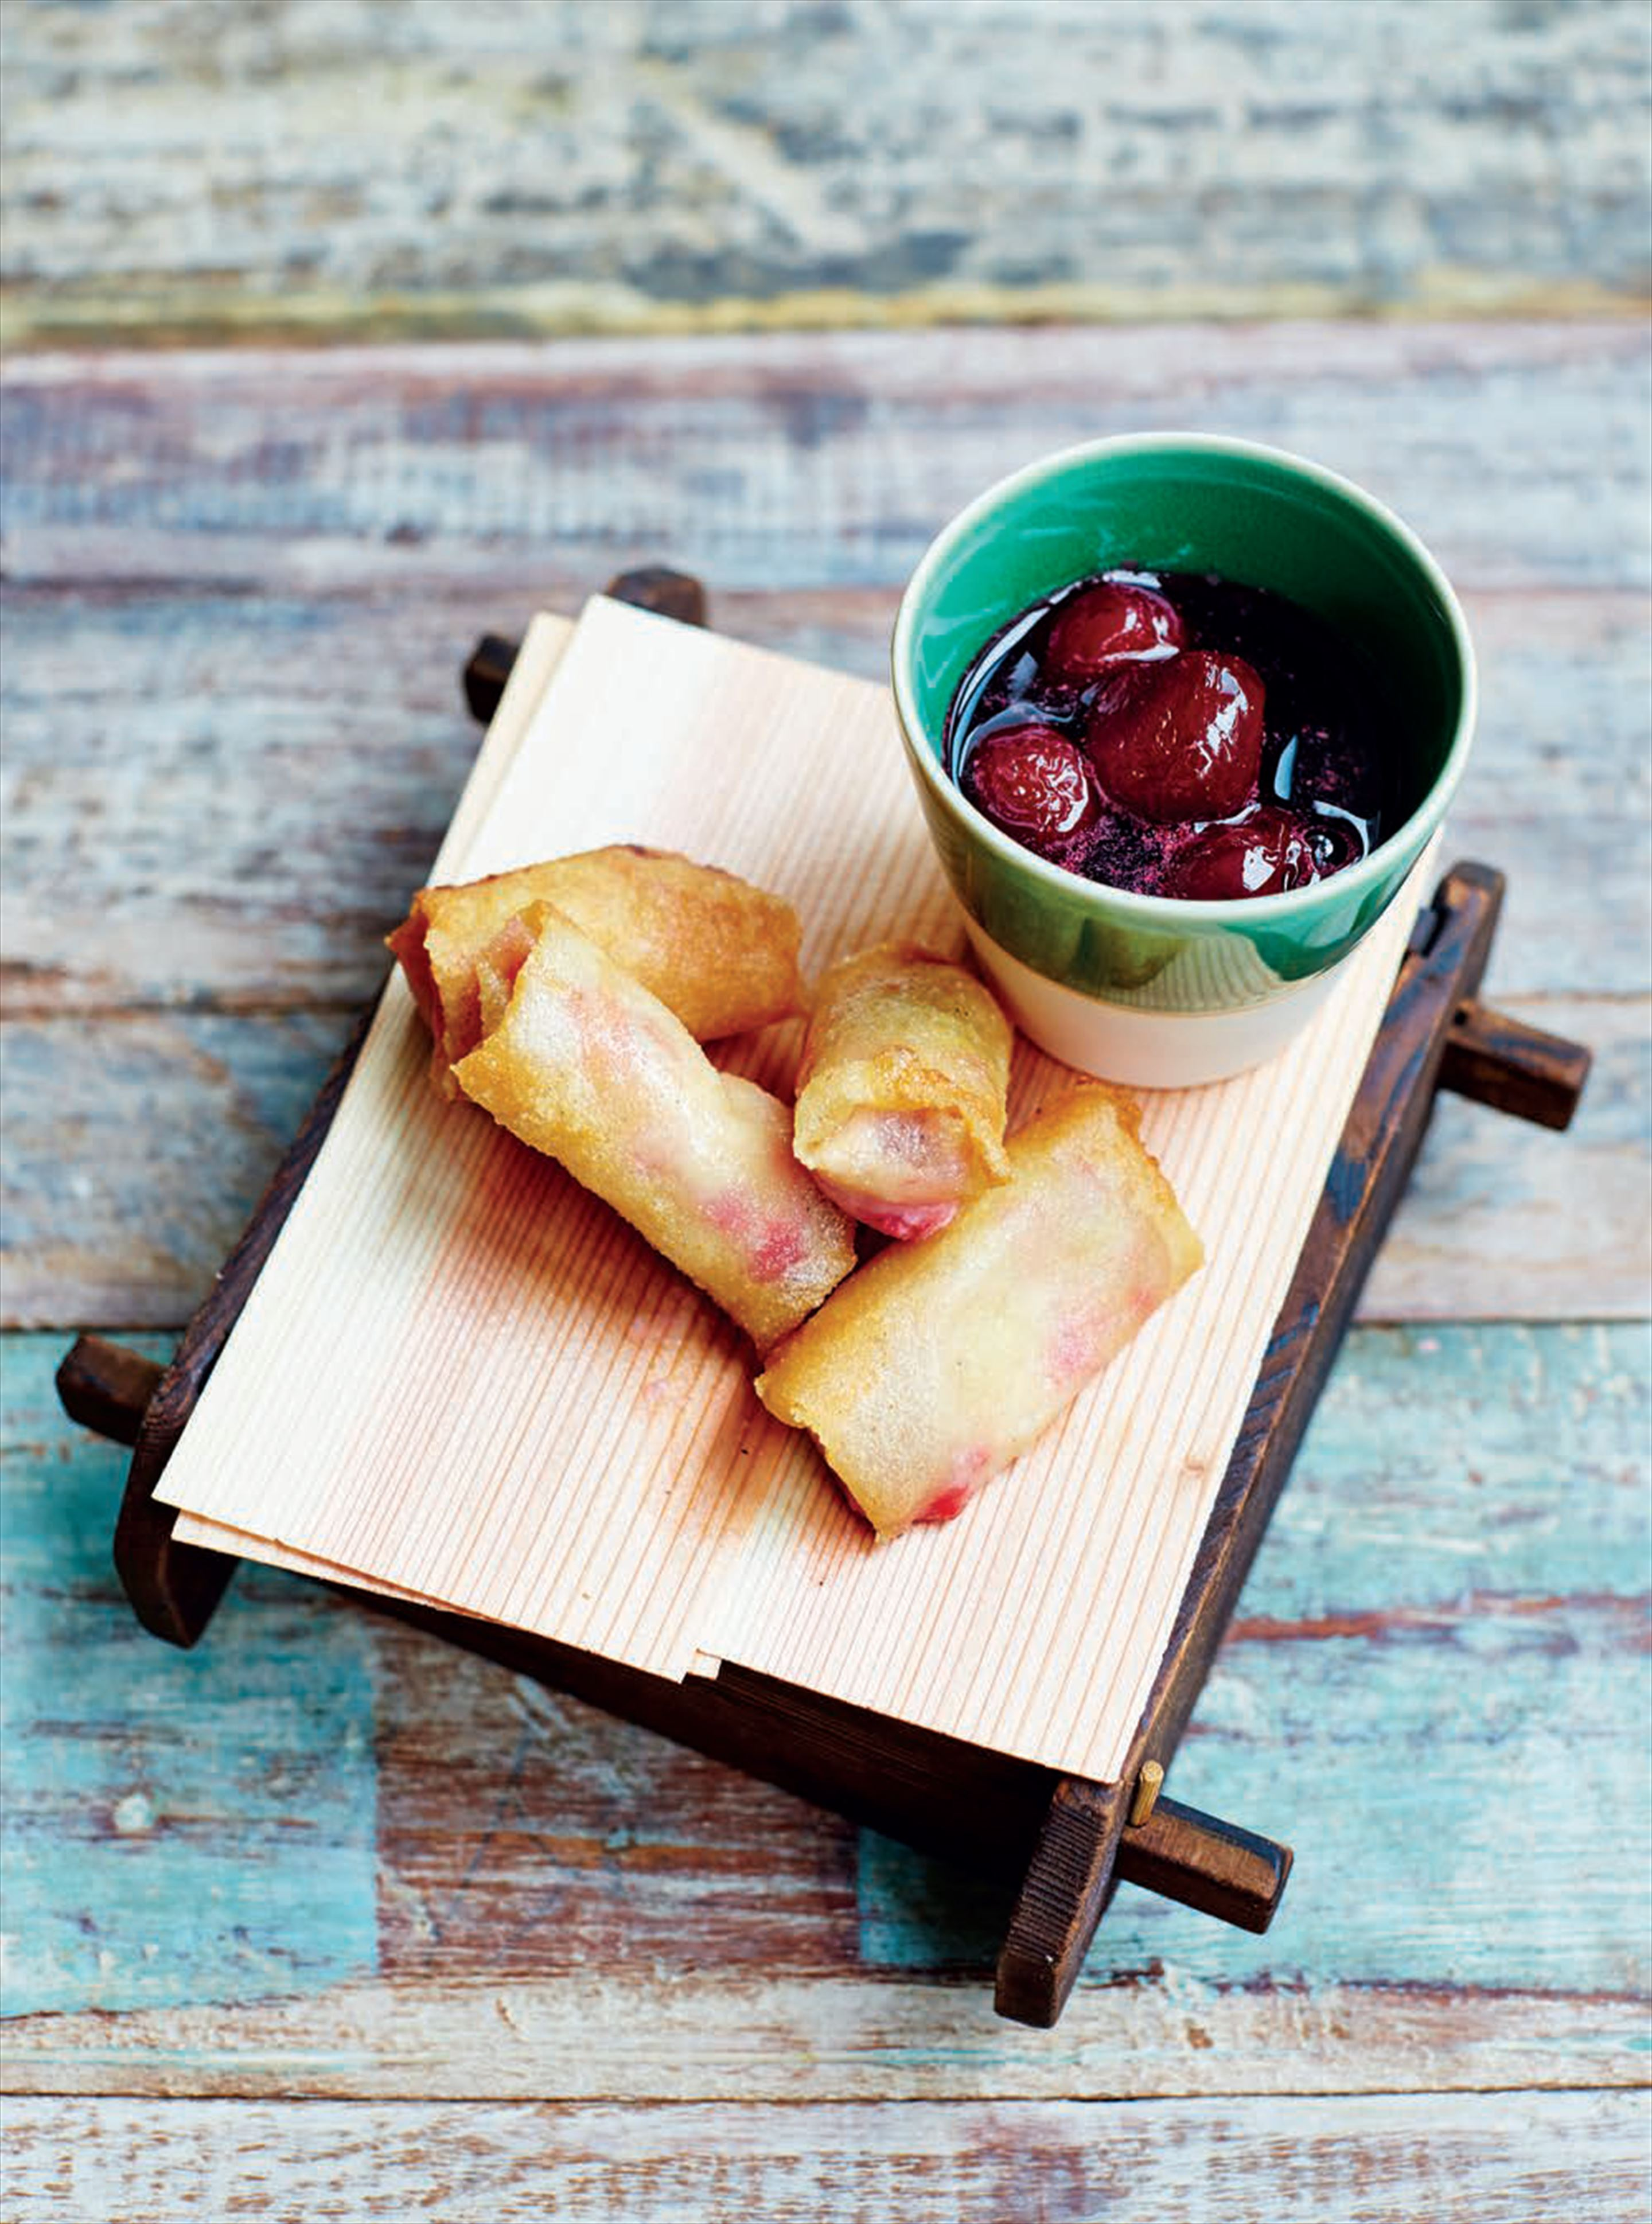 Fried raspberry ice cream 'harumaki' with boozy shochu cherries